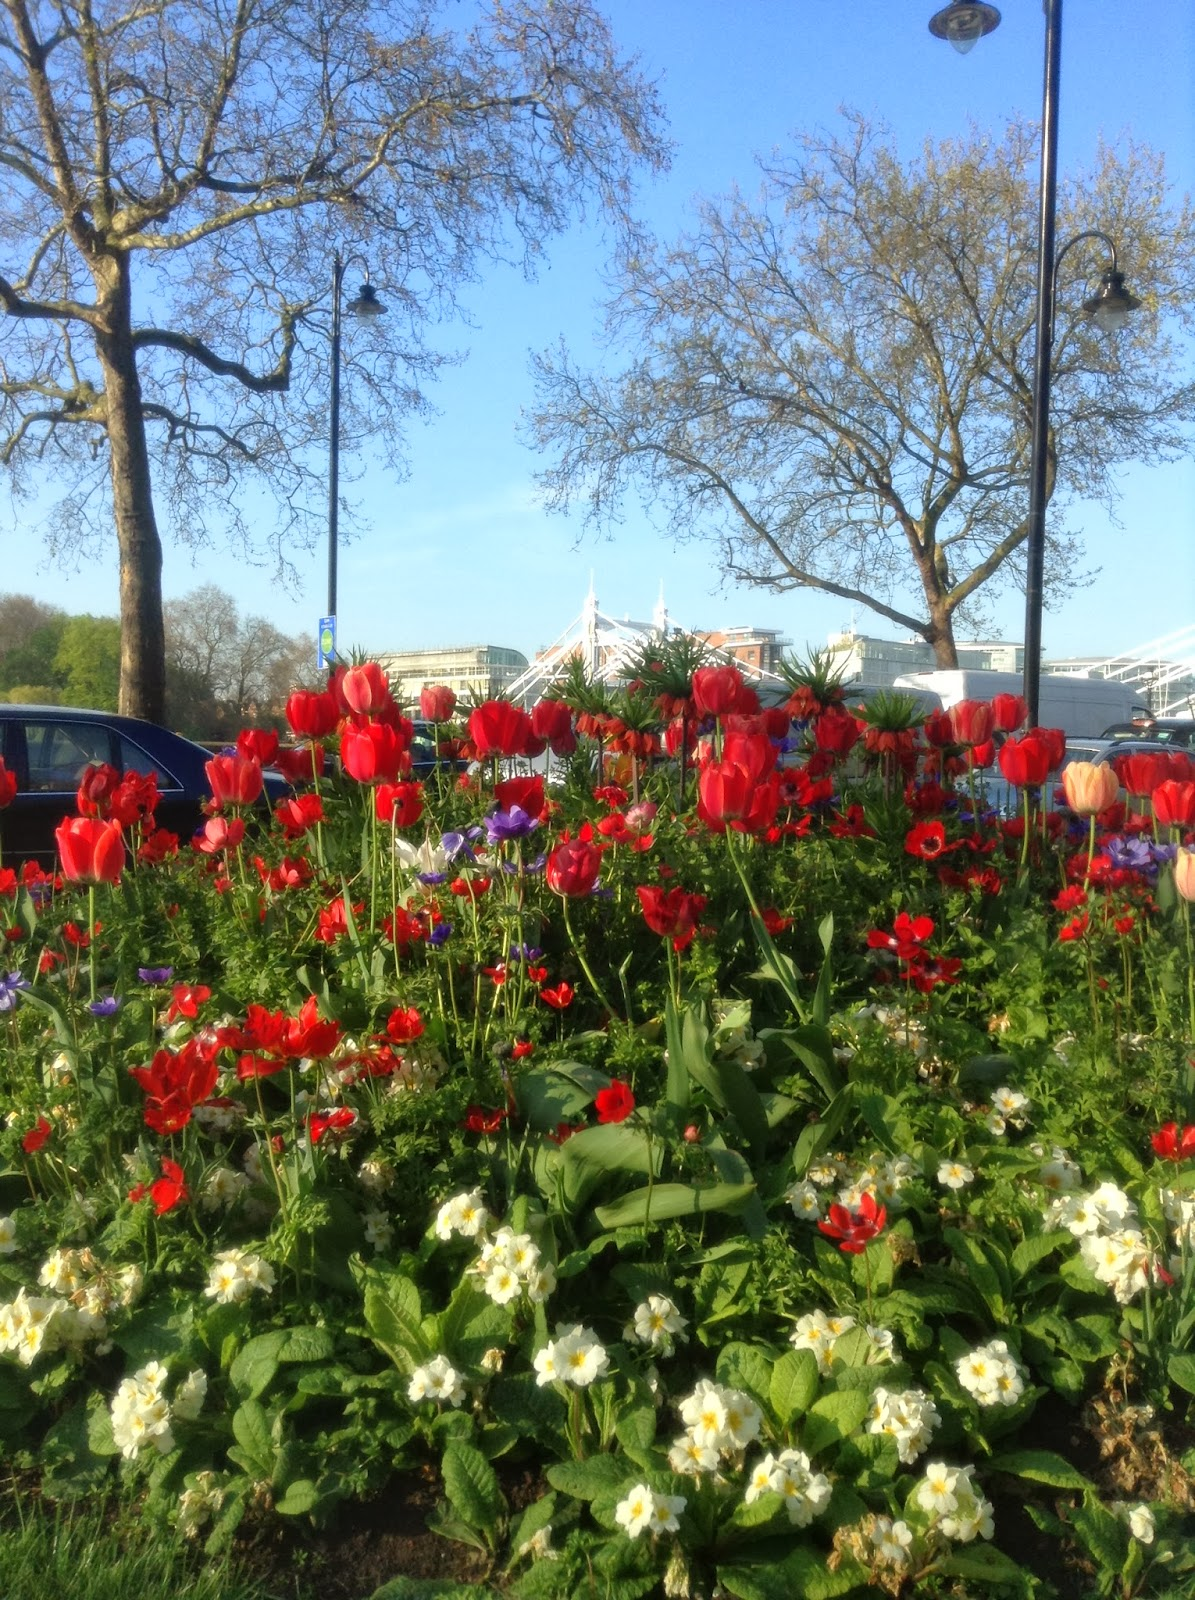 Tulips , Anemones and Primroses at Chelsea Embankment, Chelsea Bridge, Photo by Mercurelli